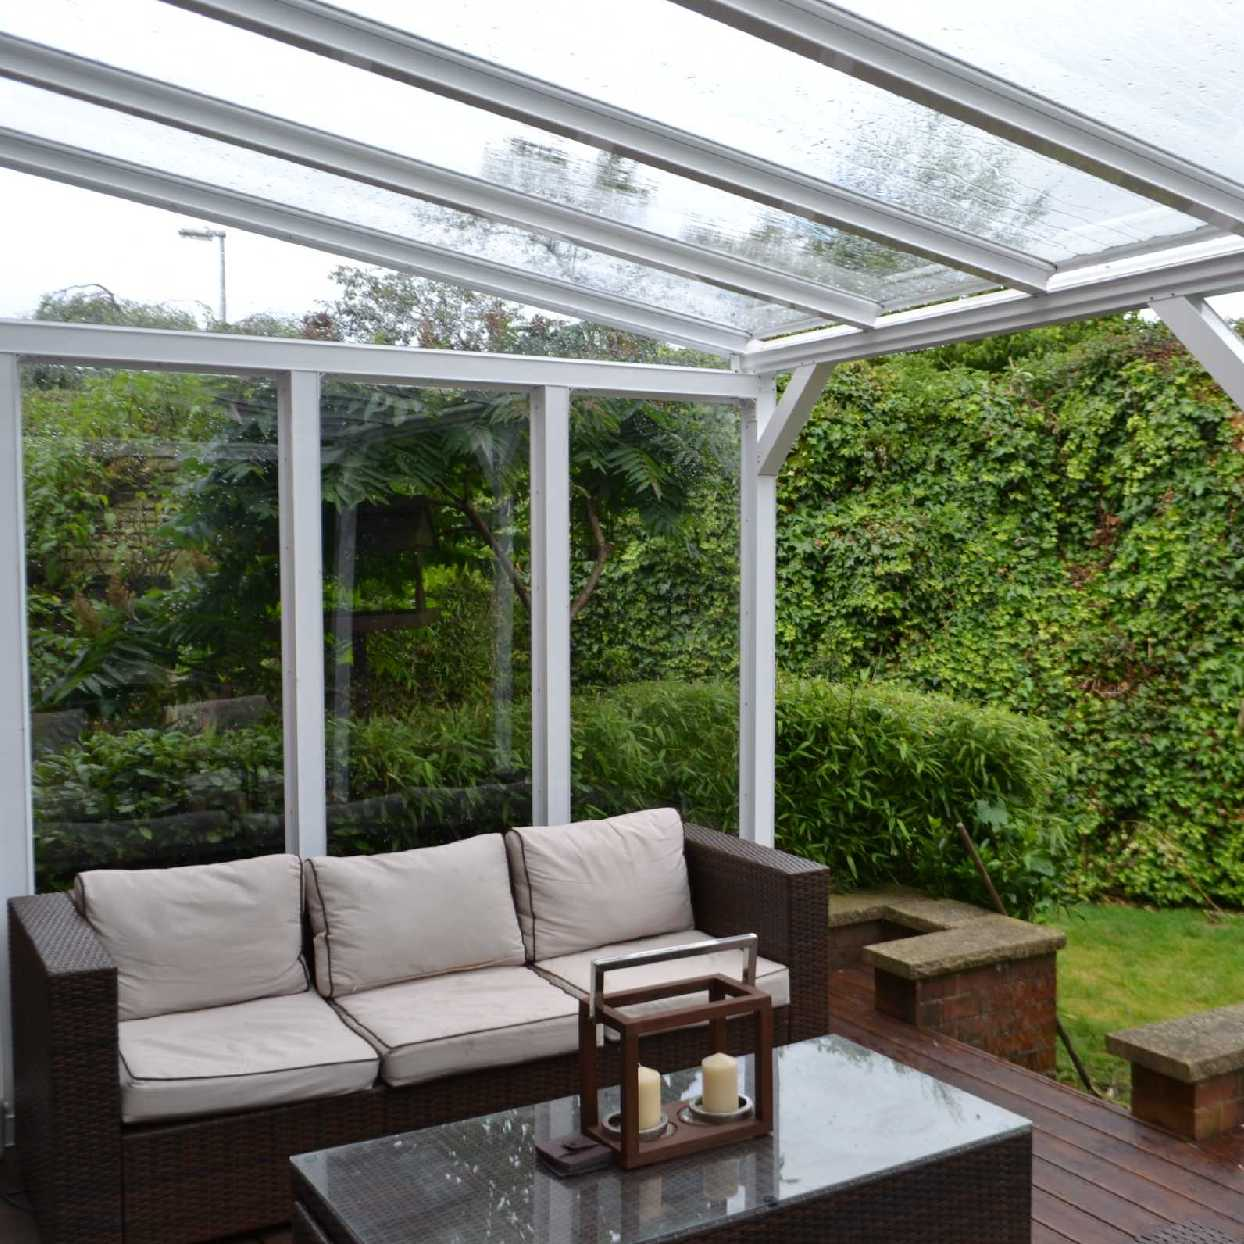 Omega Smart Lean-To Canopy with 6mm Glass Clear Plate Polycarbonate Glazing - 4.9m (W) x 1.5m (P), (3) Supporting Posts